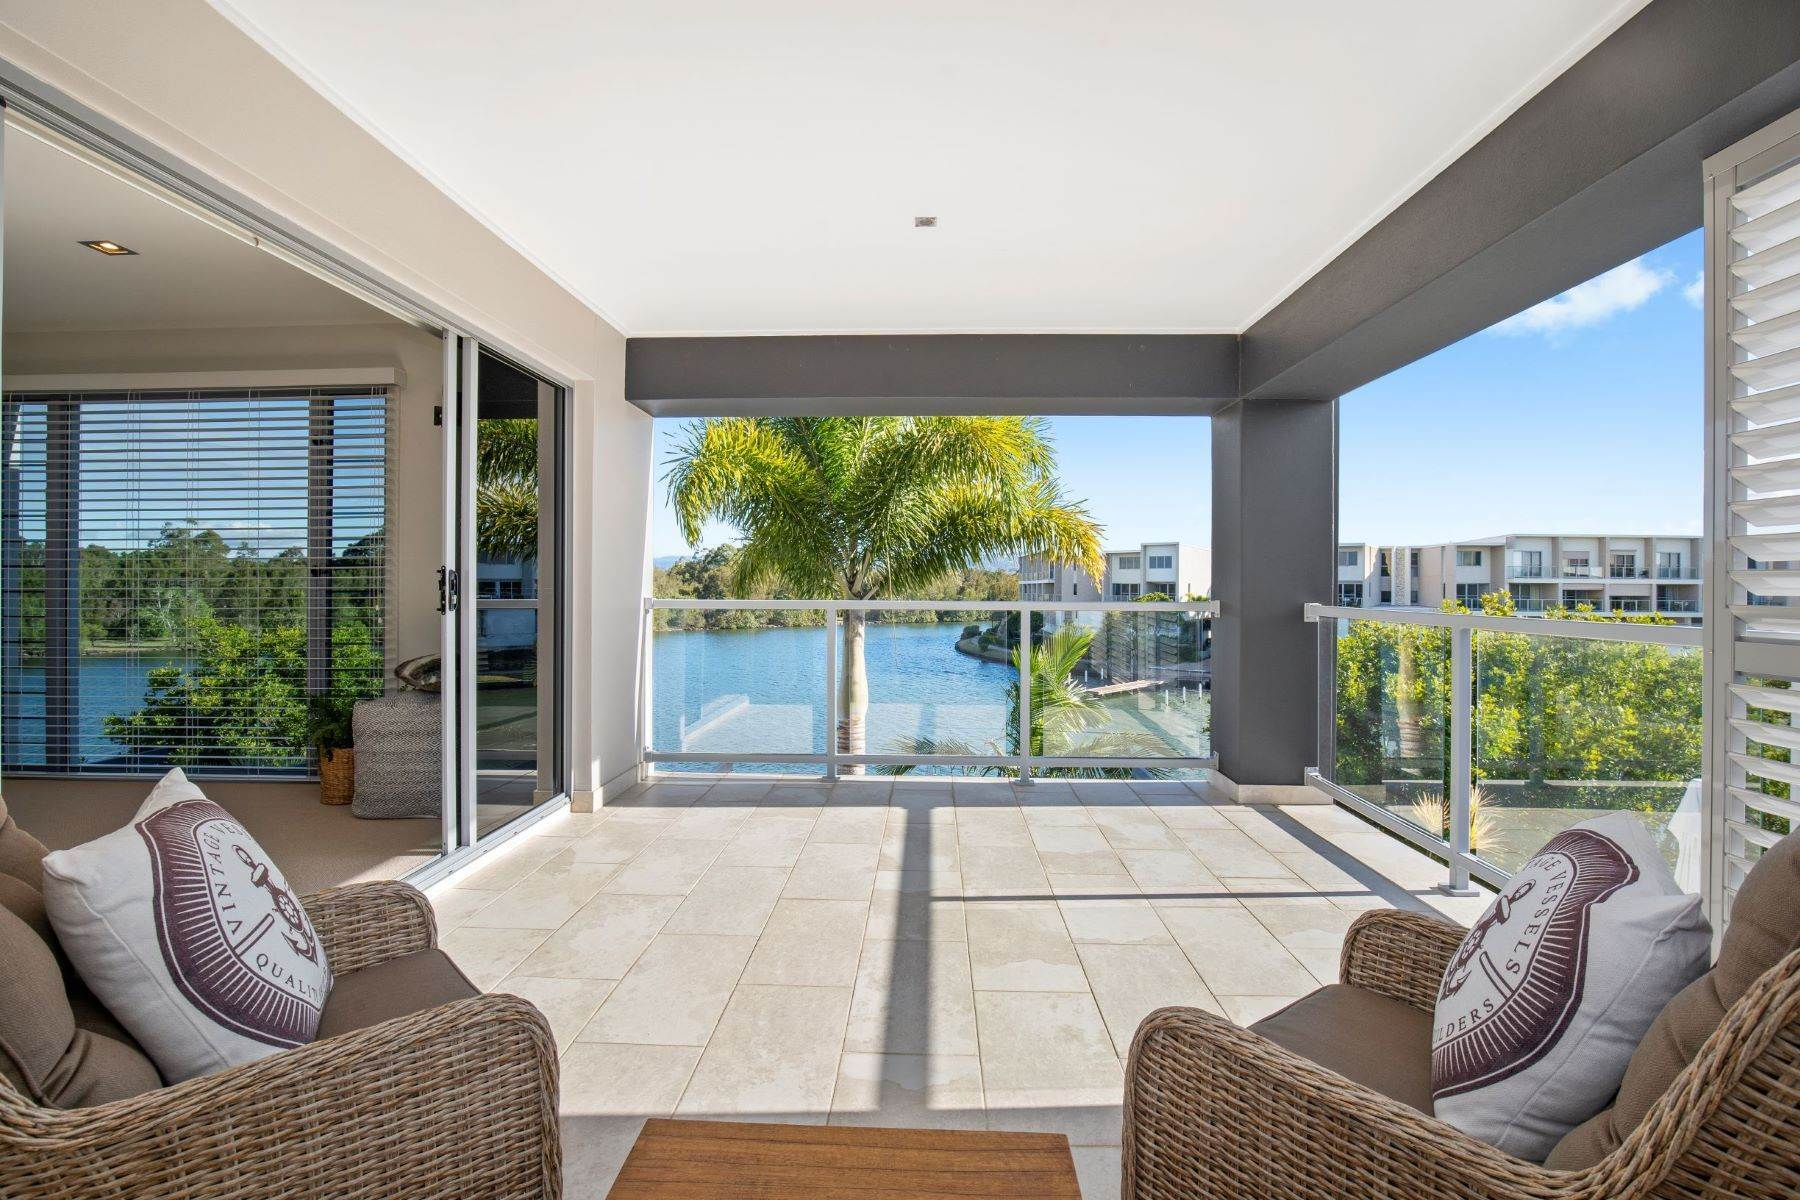 20. Single Family Homes for Sale at Luxury Lakeside Family Home on Prestigious Emerald Island 5068 Emerald Island Drive Other Queensland, Queensland 4211 Australia